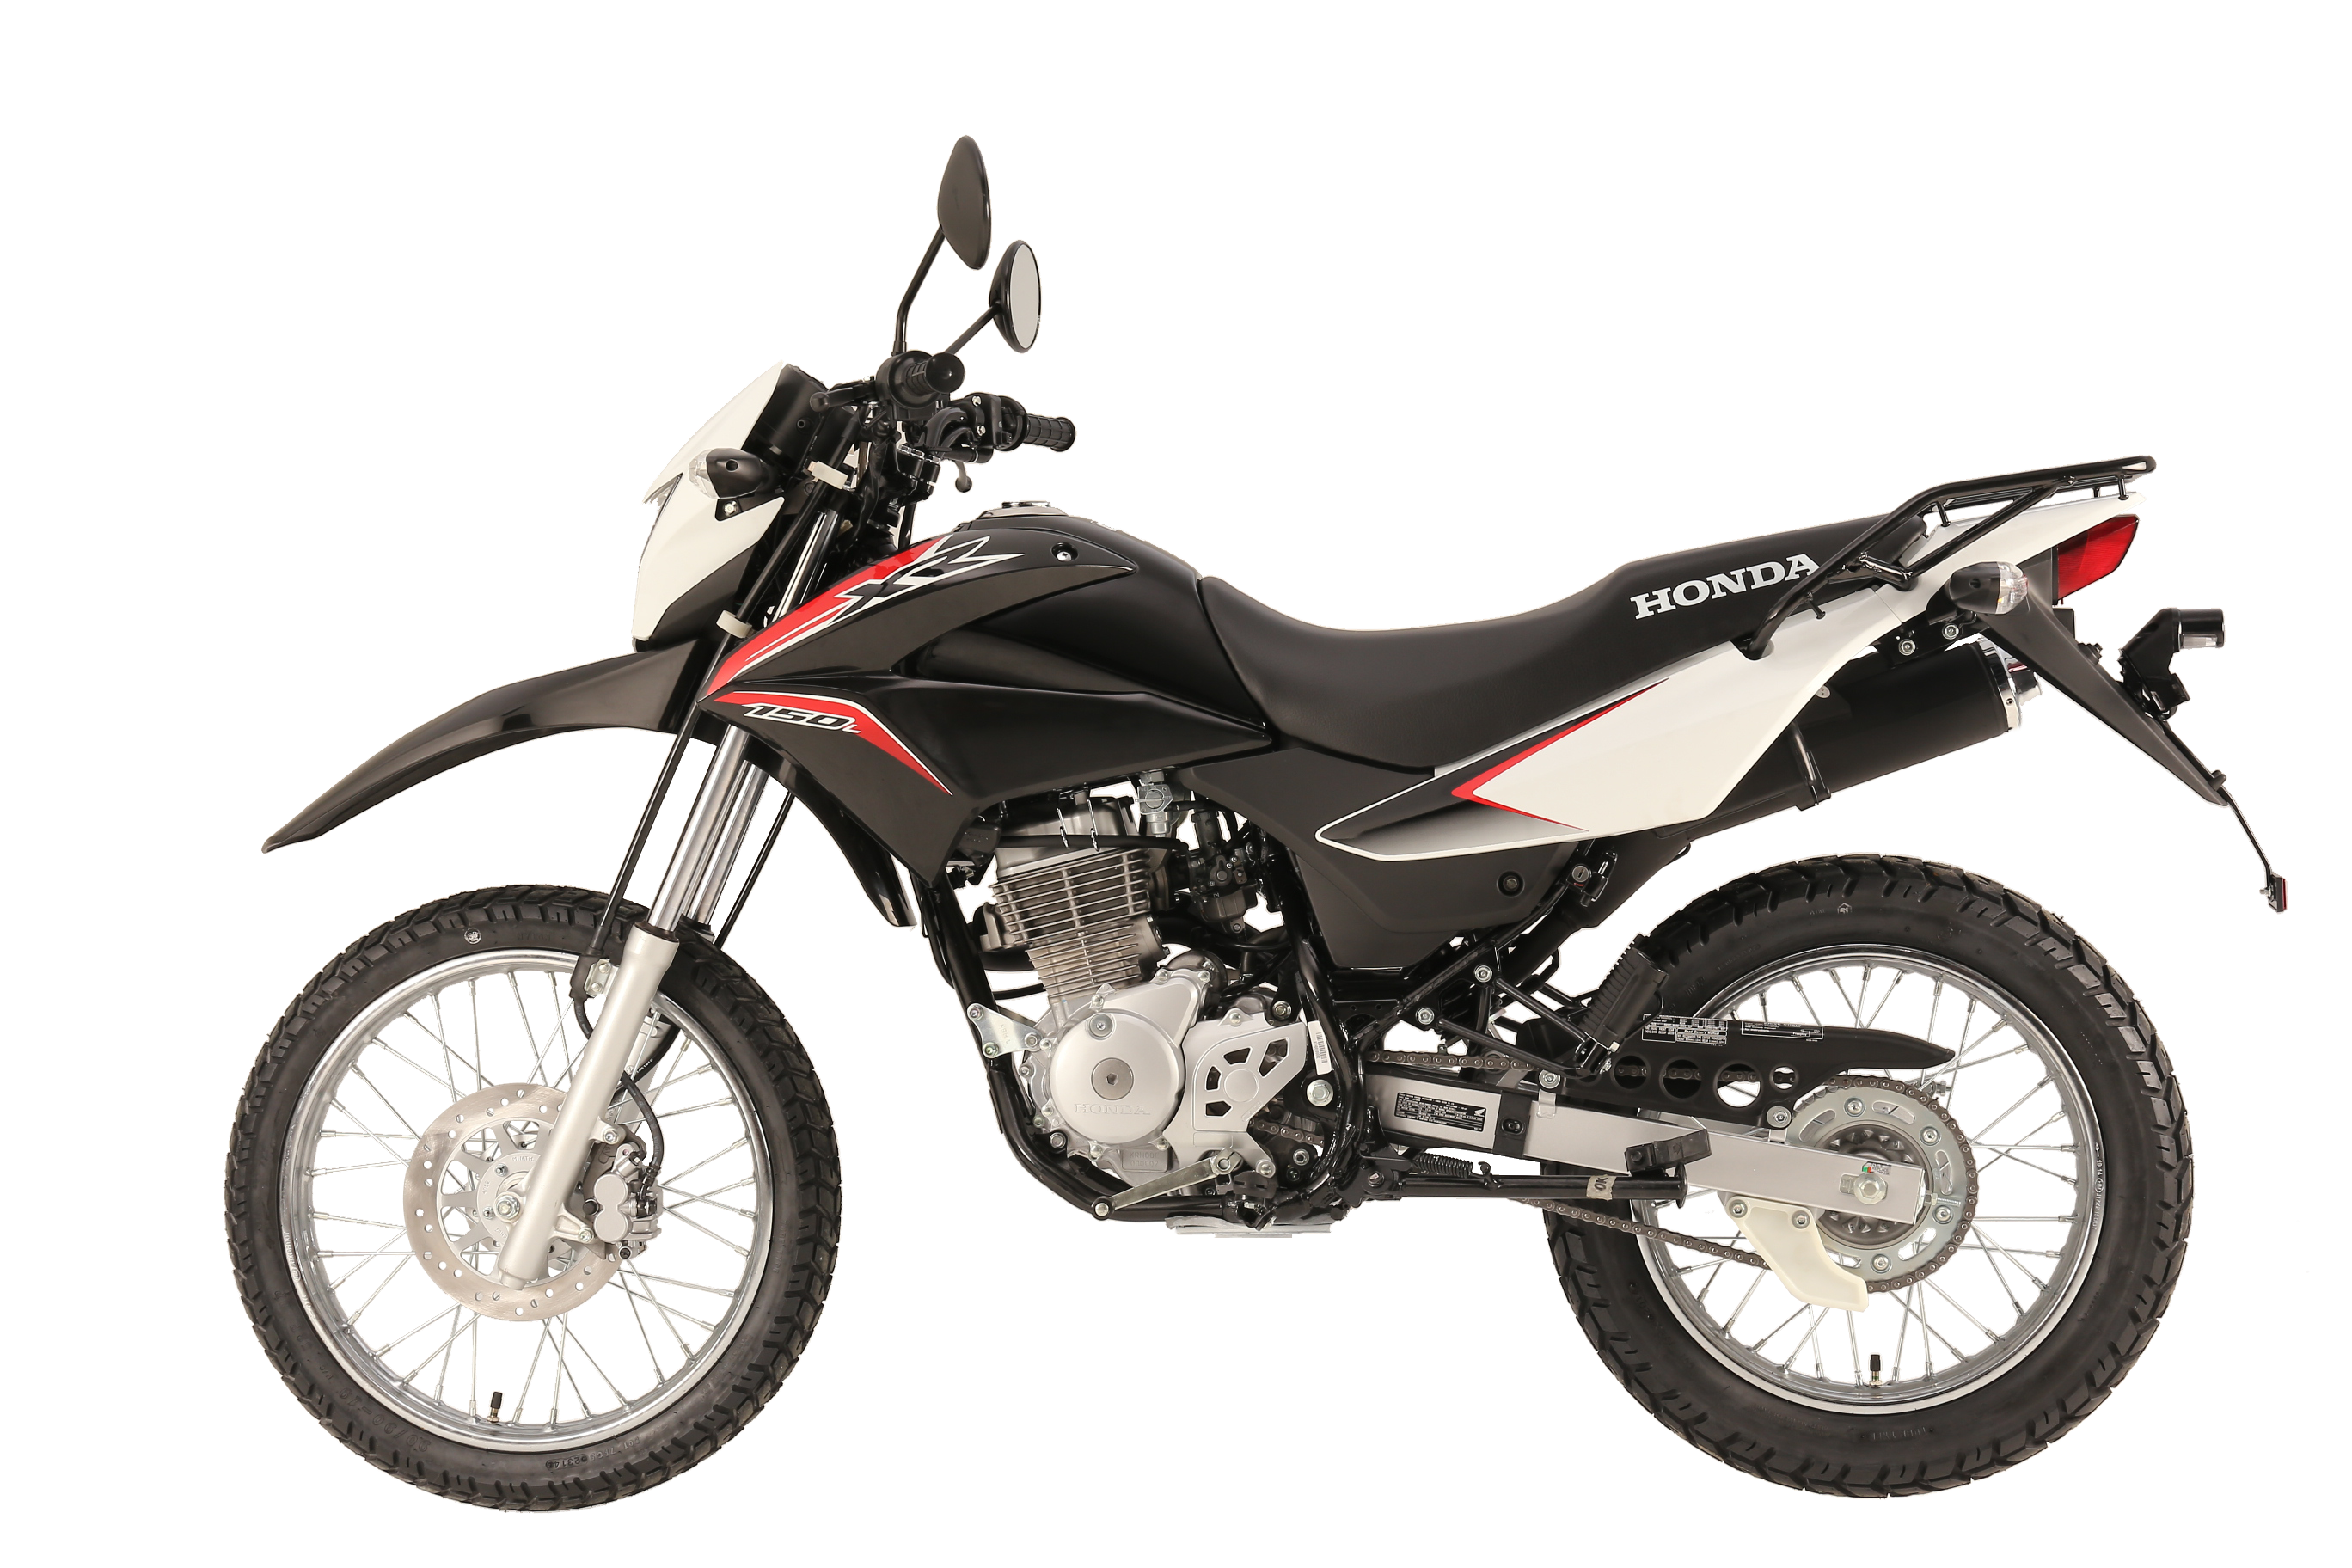 Honda motorcycles philippines website - Honda Philippines Inc Today Launches Another Version Of Its Popular And Versatile On Off Motorcycle The Honda Xr150l The Honda Xr150l Furthers The On Off